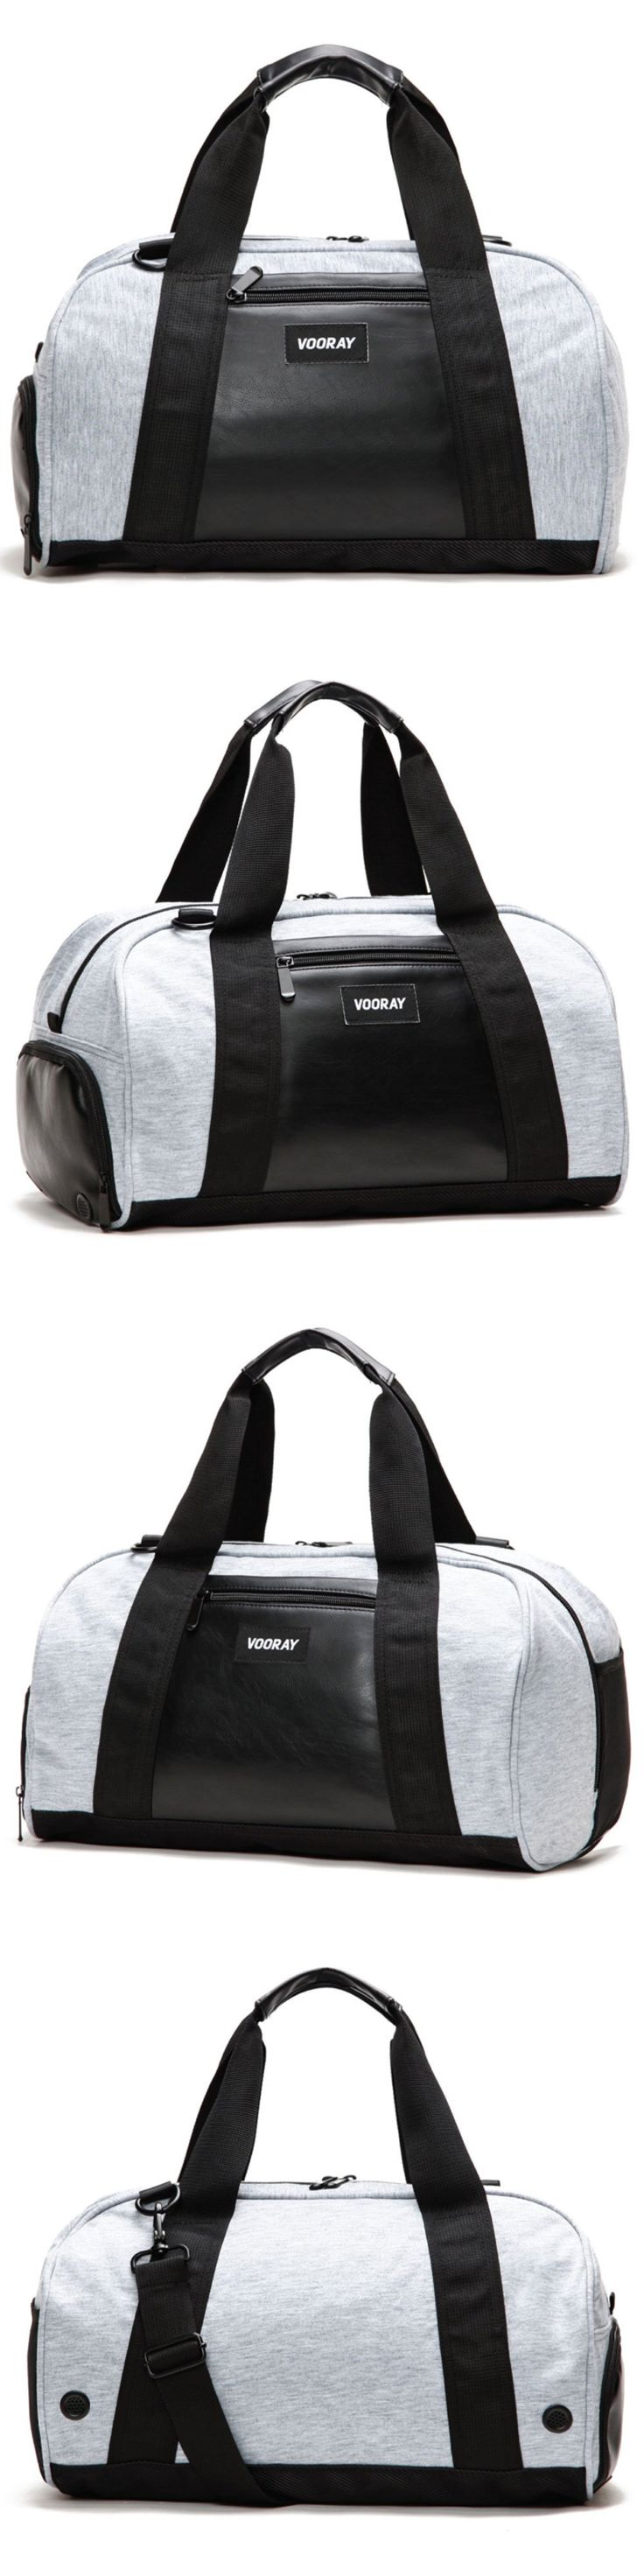 Gym Bags 68816 Vooray Burner 16 Compact Bag With Shoe Pocket BUY IT NOW ONLY 6084 On EBay